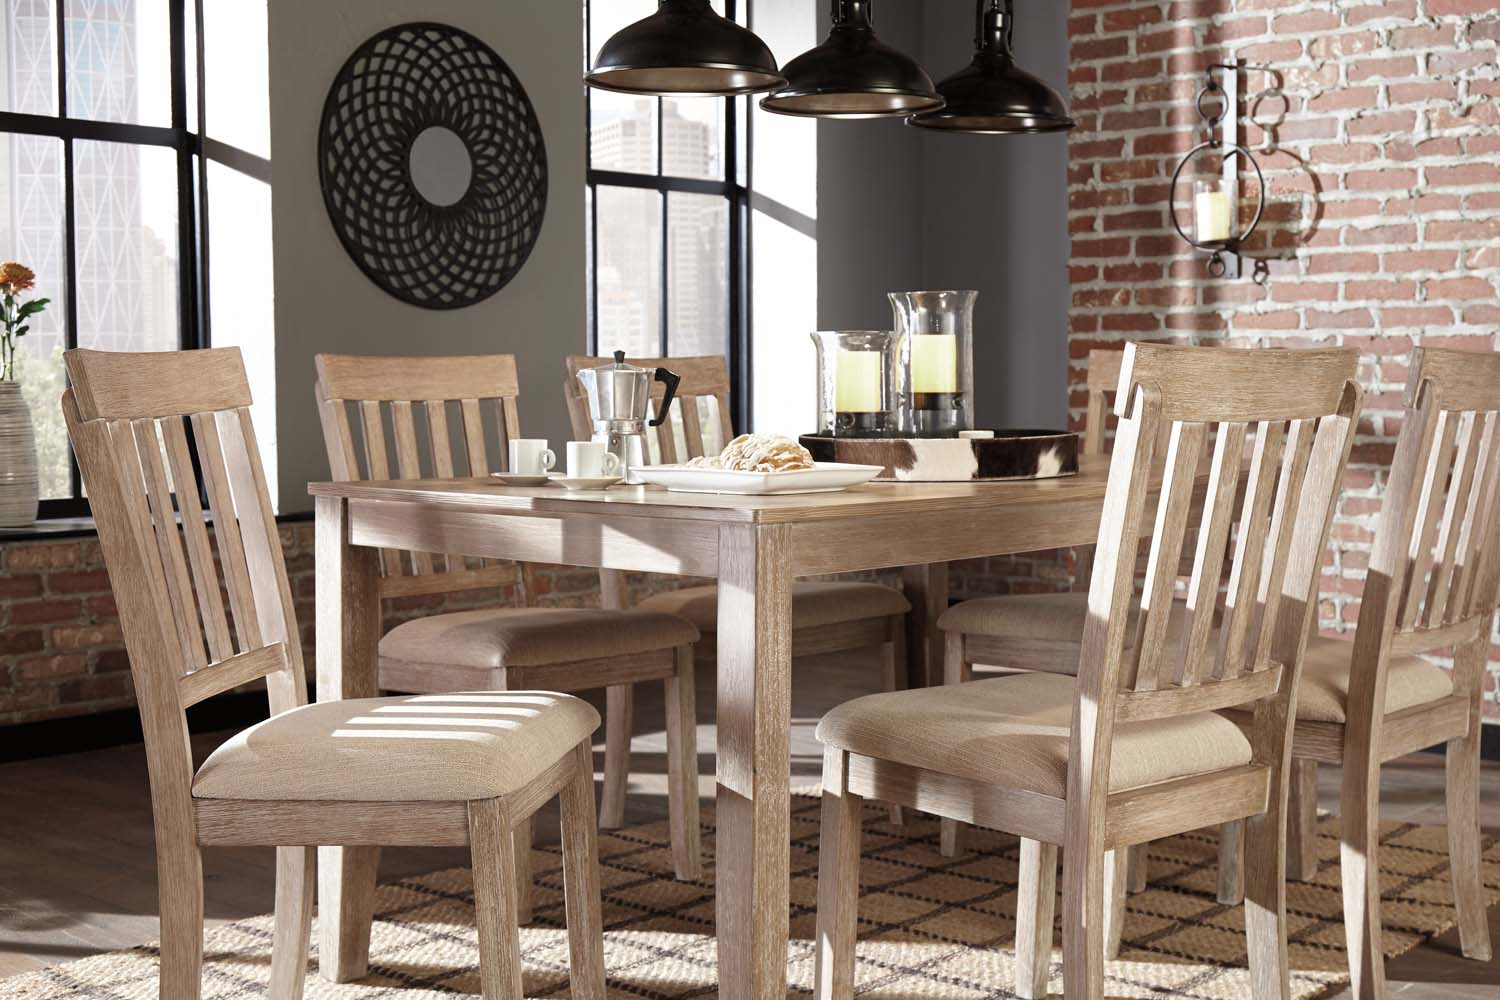 Ashley Furniture 7 Pc Dining Room Table Set